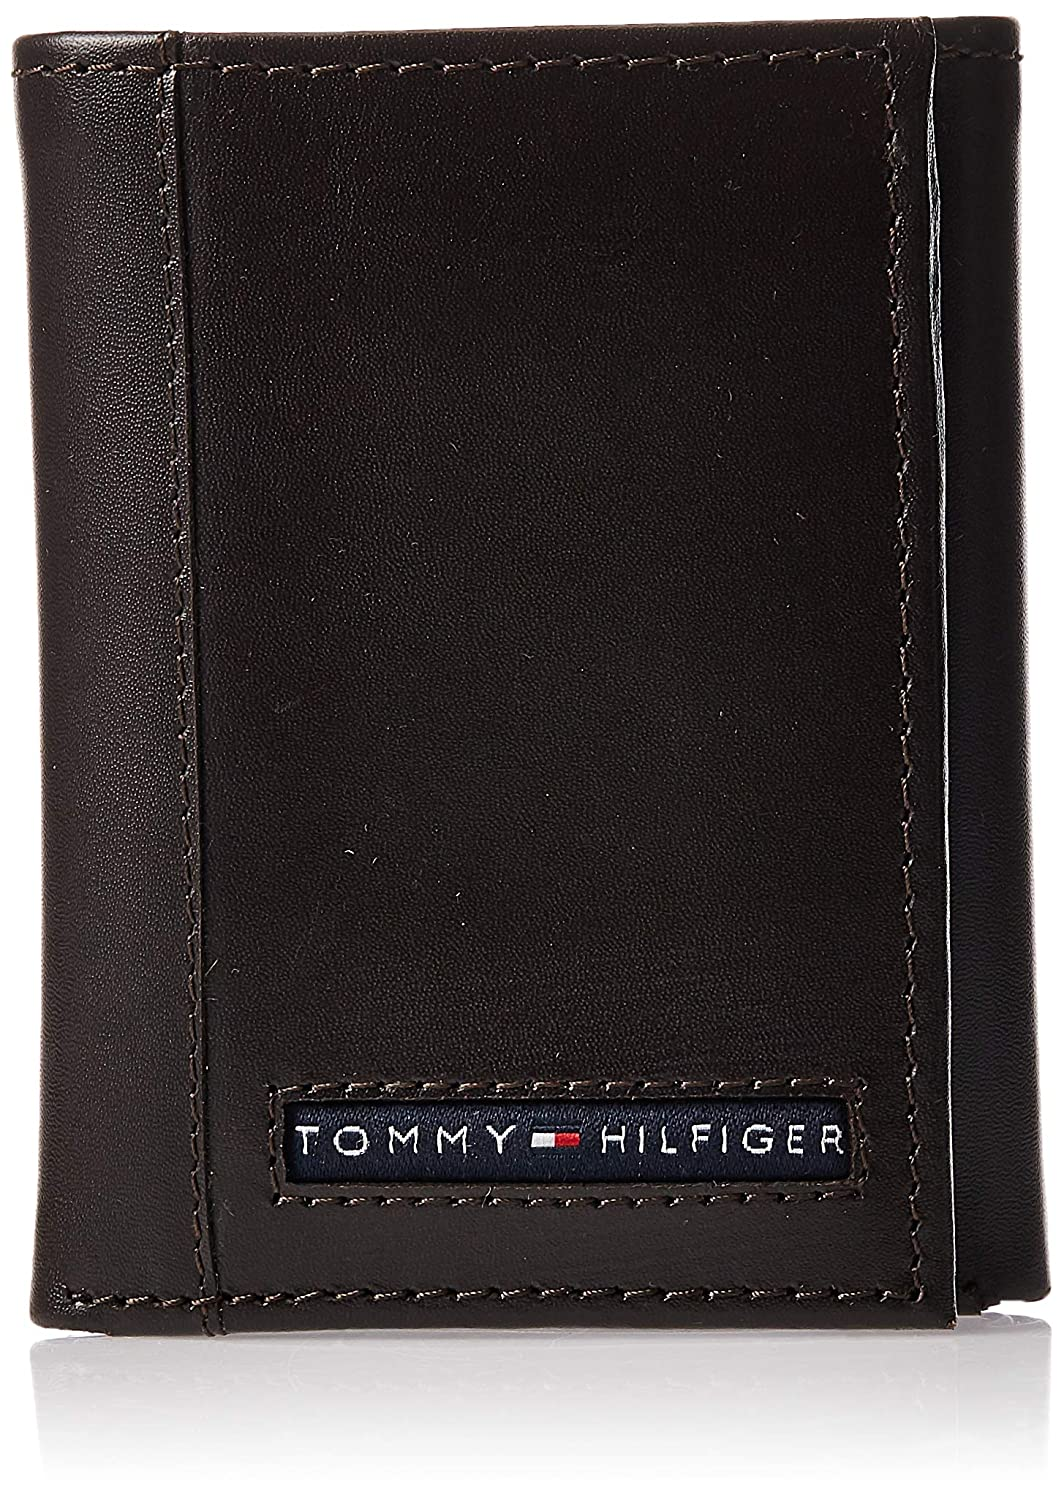 Tommy Hilfiger Mens Leather Cambridge Trifold Wallet,Brown,